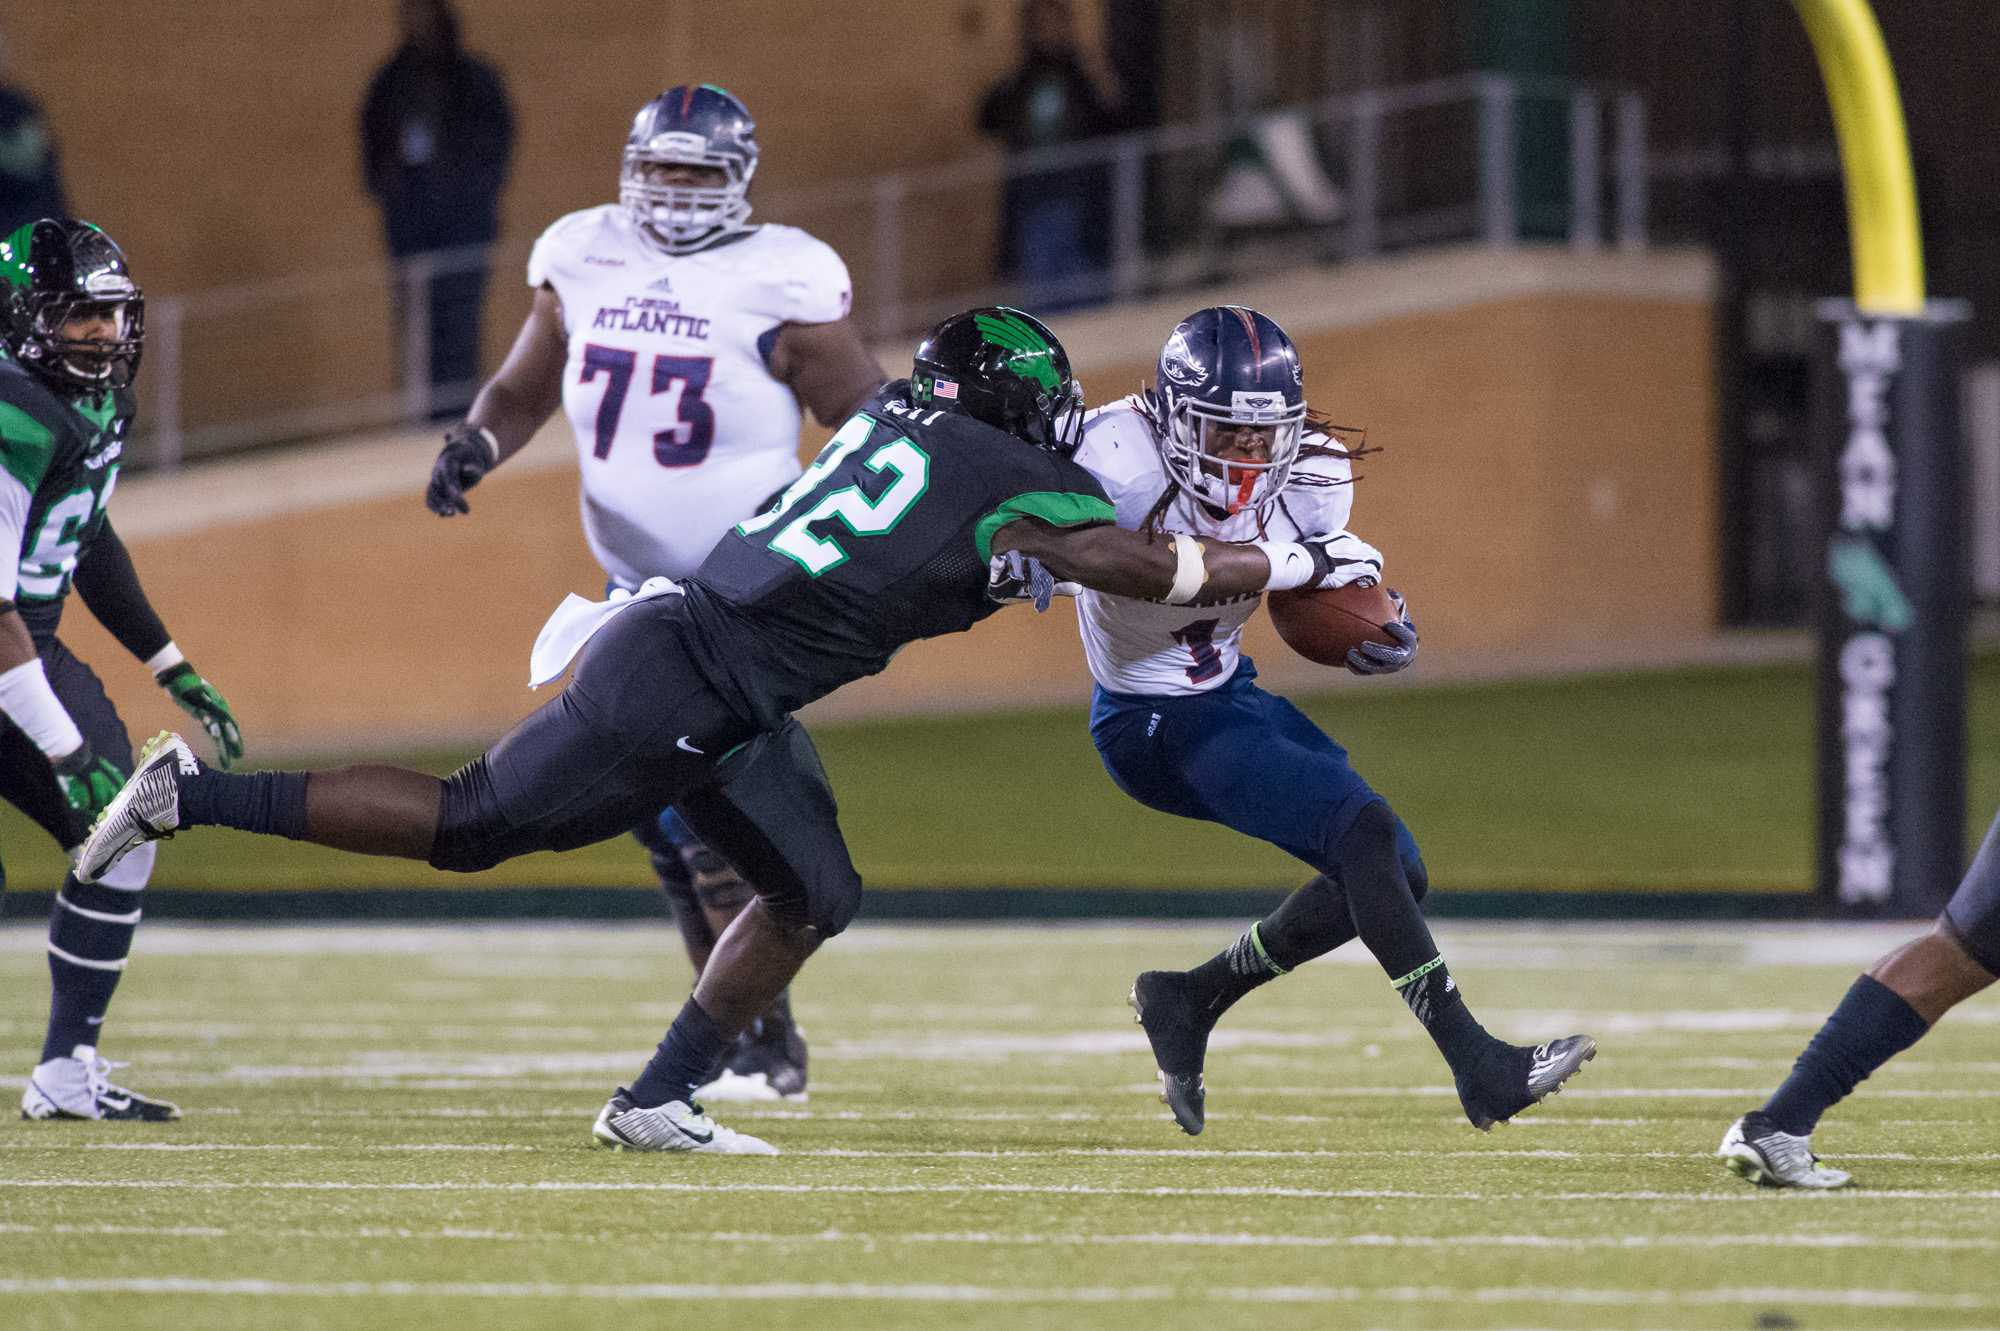 [ Max Jackson | Photo Editor ] Lucky Whitehead takes on a North Texas defender on what became a 17 yard punt return to the North Texas 47.